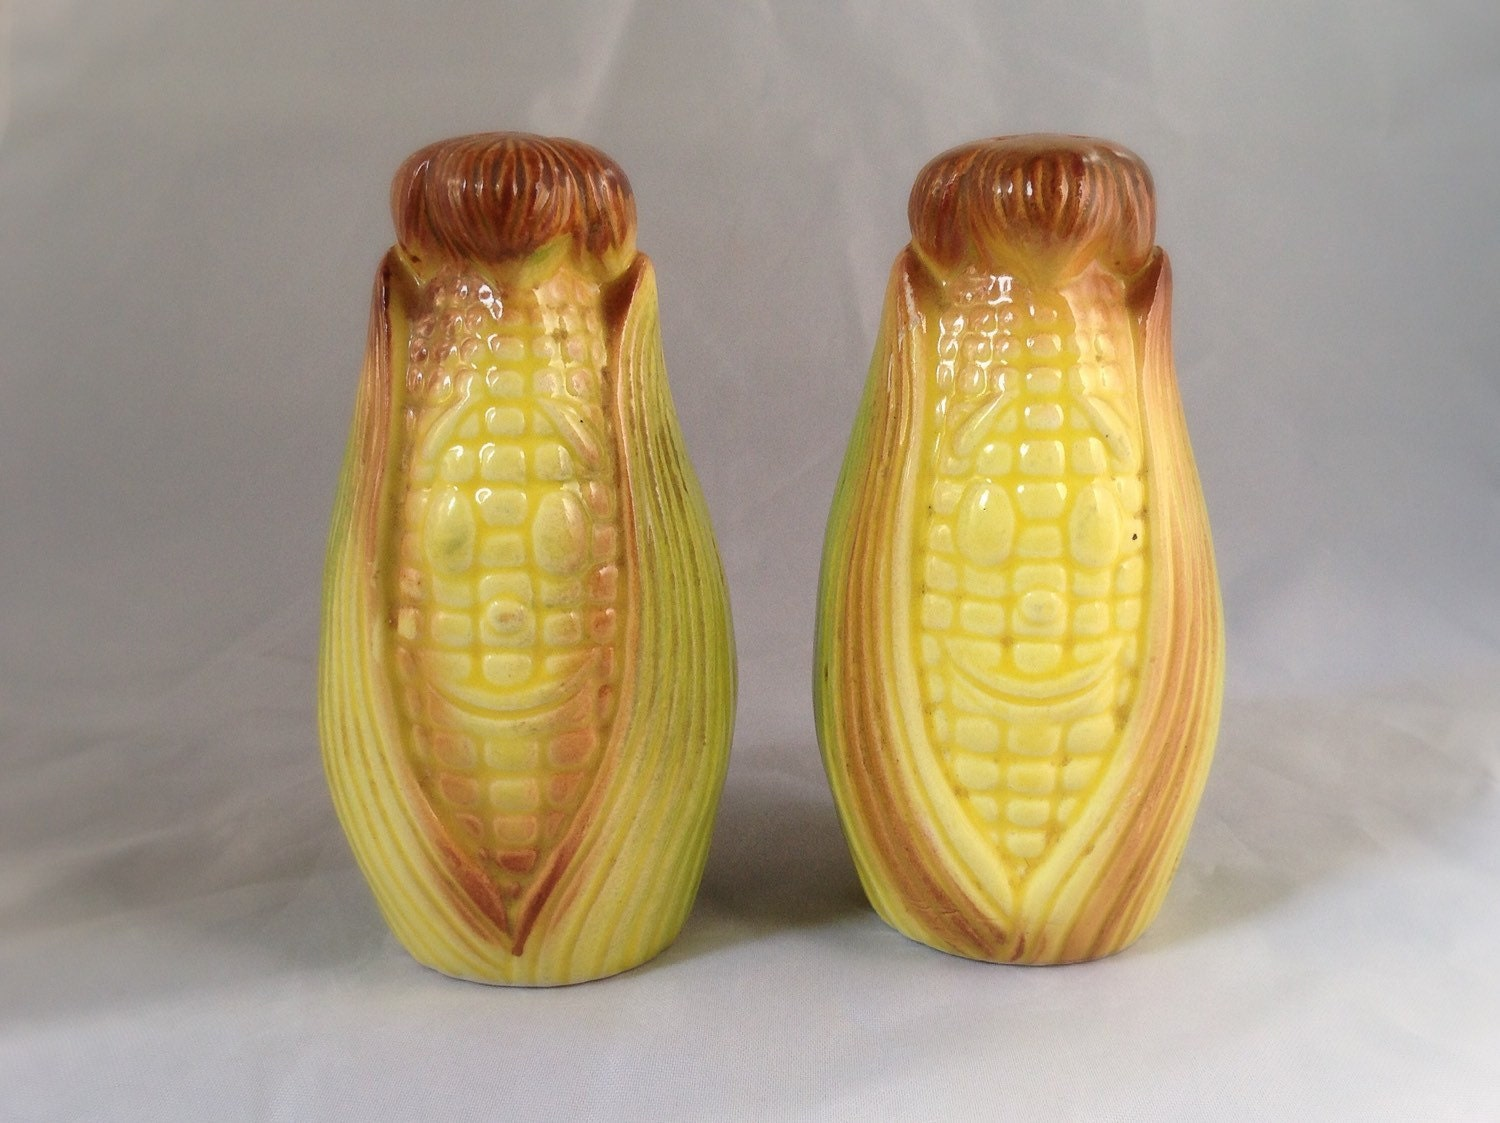 Salt And Pepper Shaker Unique Collectable By Alicesvintagebee